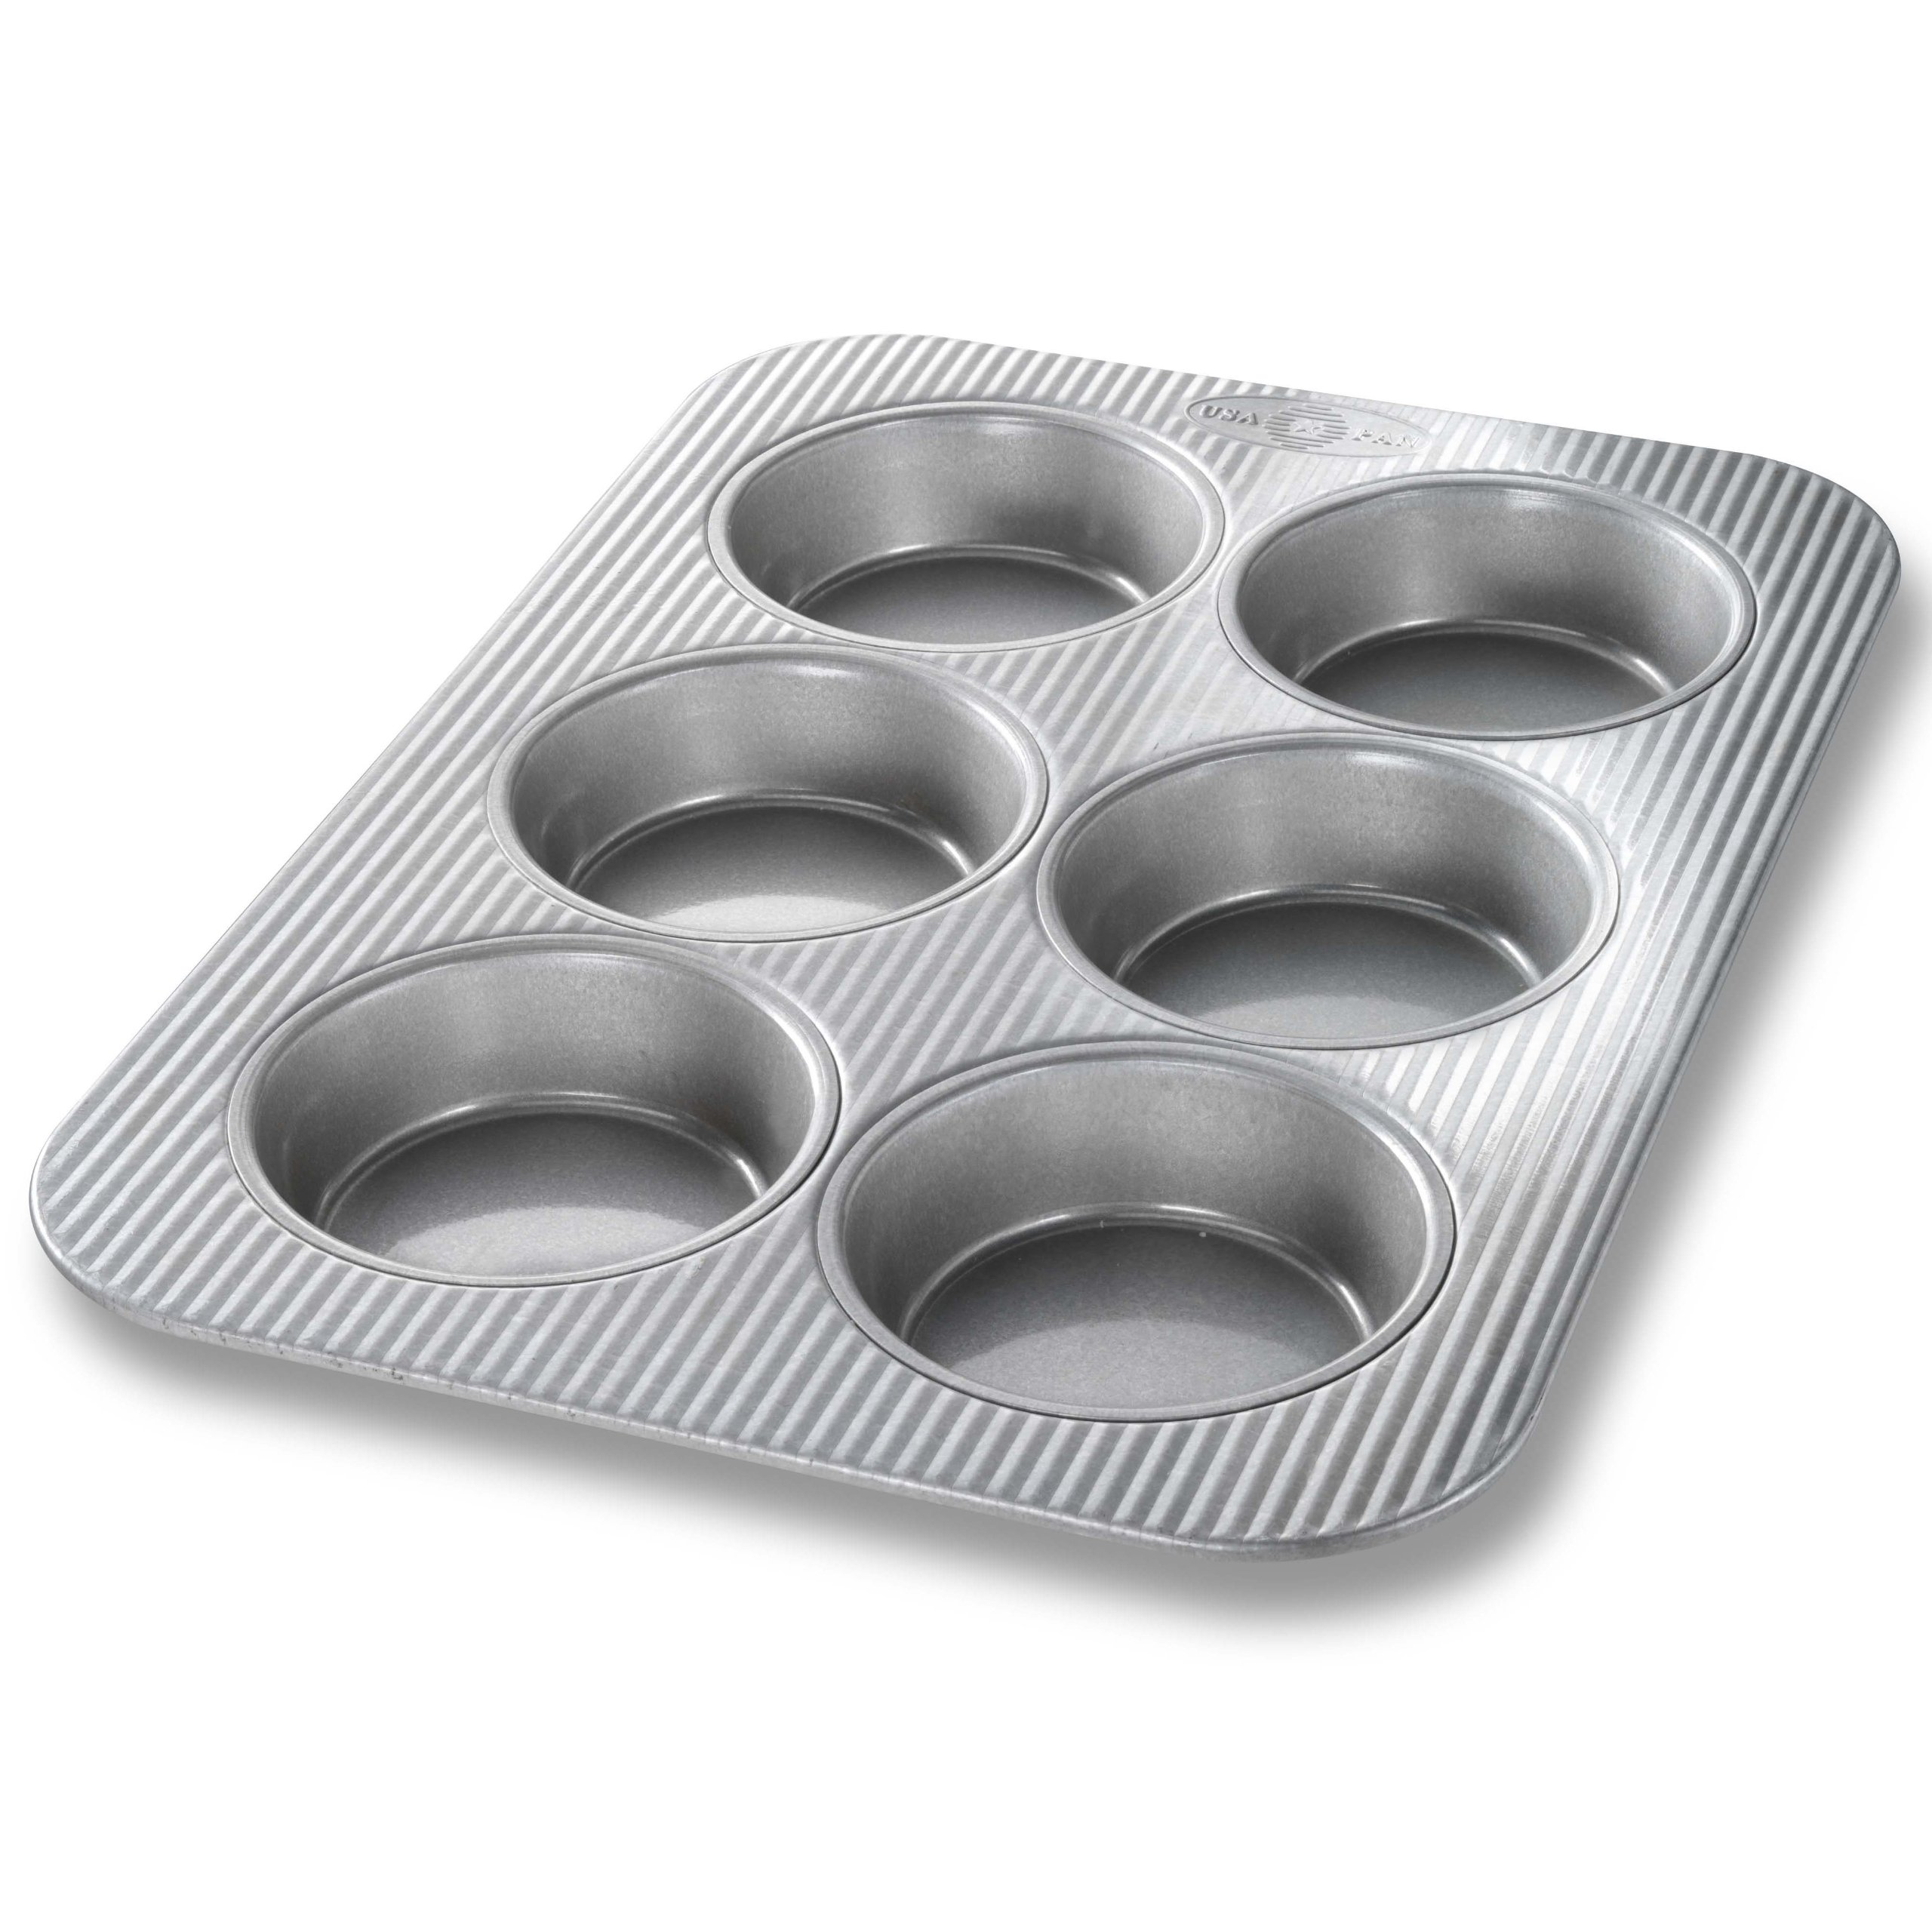 USA Pan Bakeware Mini Round Cake Pans, 6 Well, Nonstick & Quick Release Coating, Made in the USA from Aluminized Steel by USA Pan